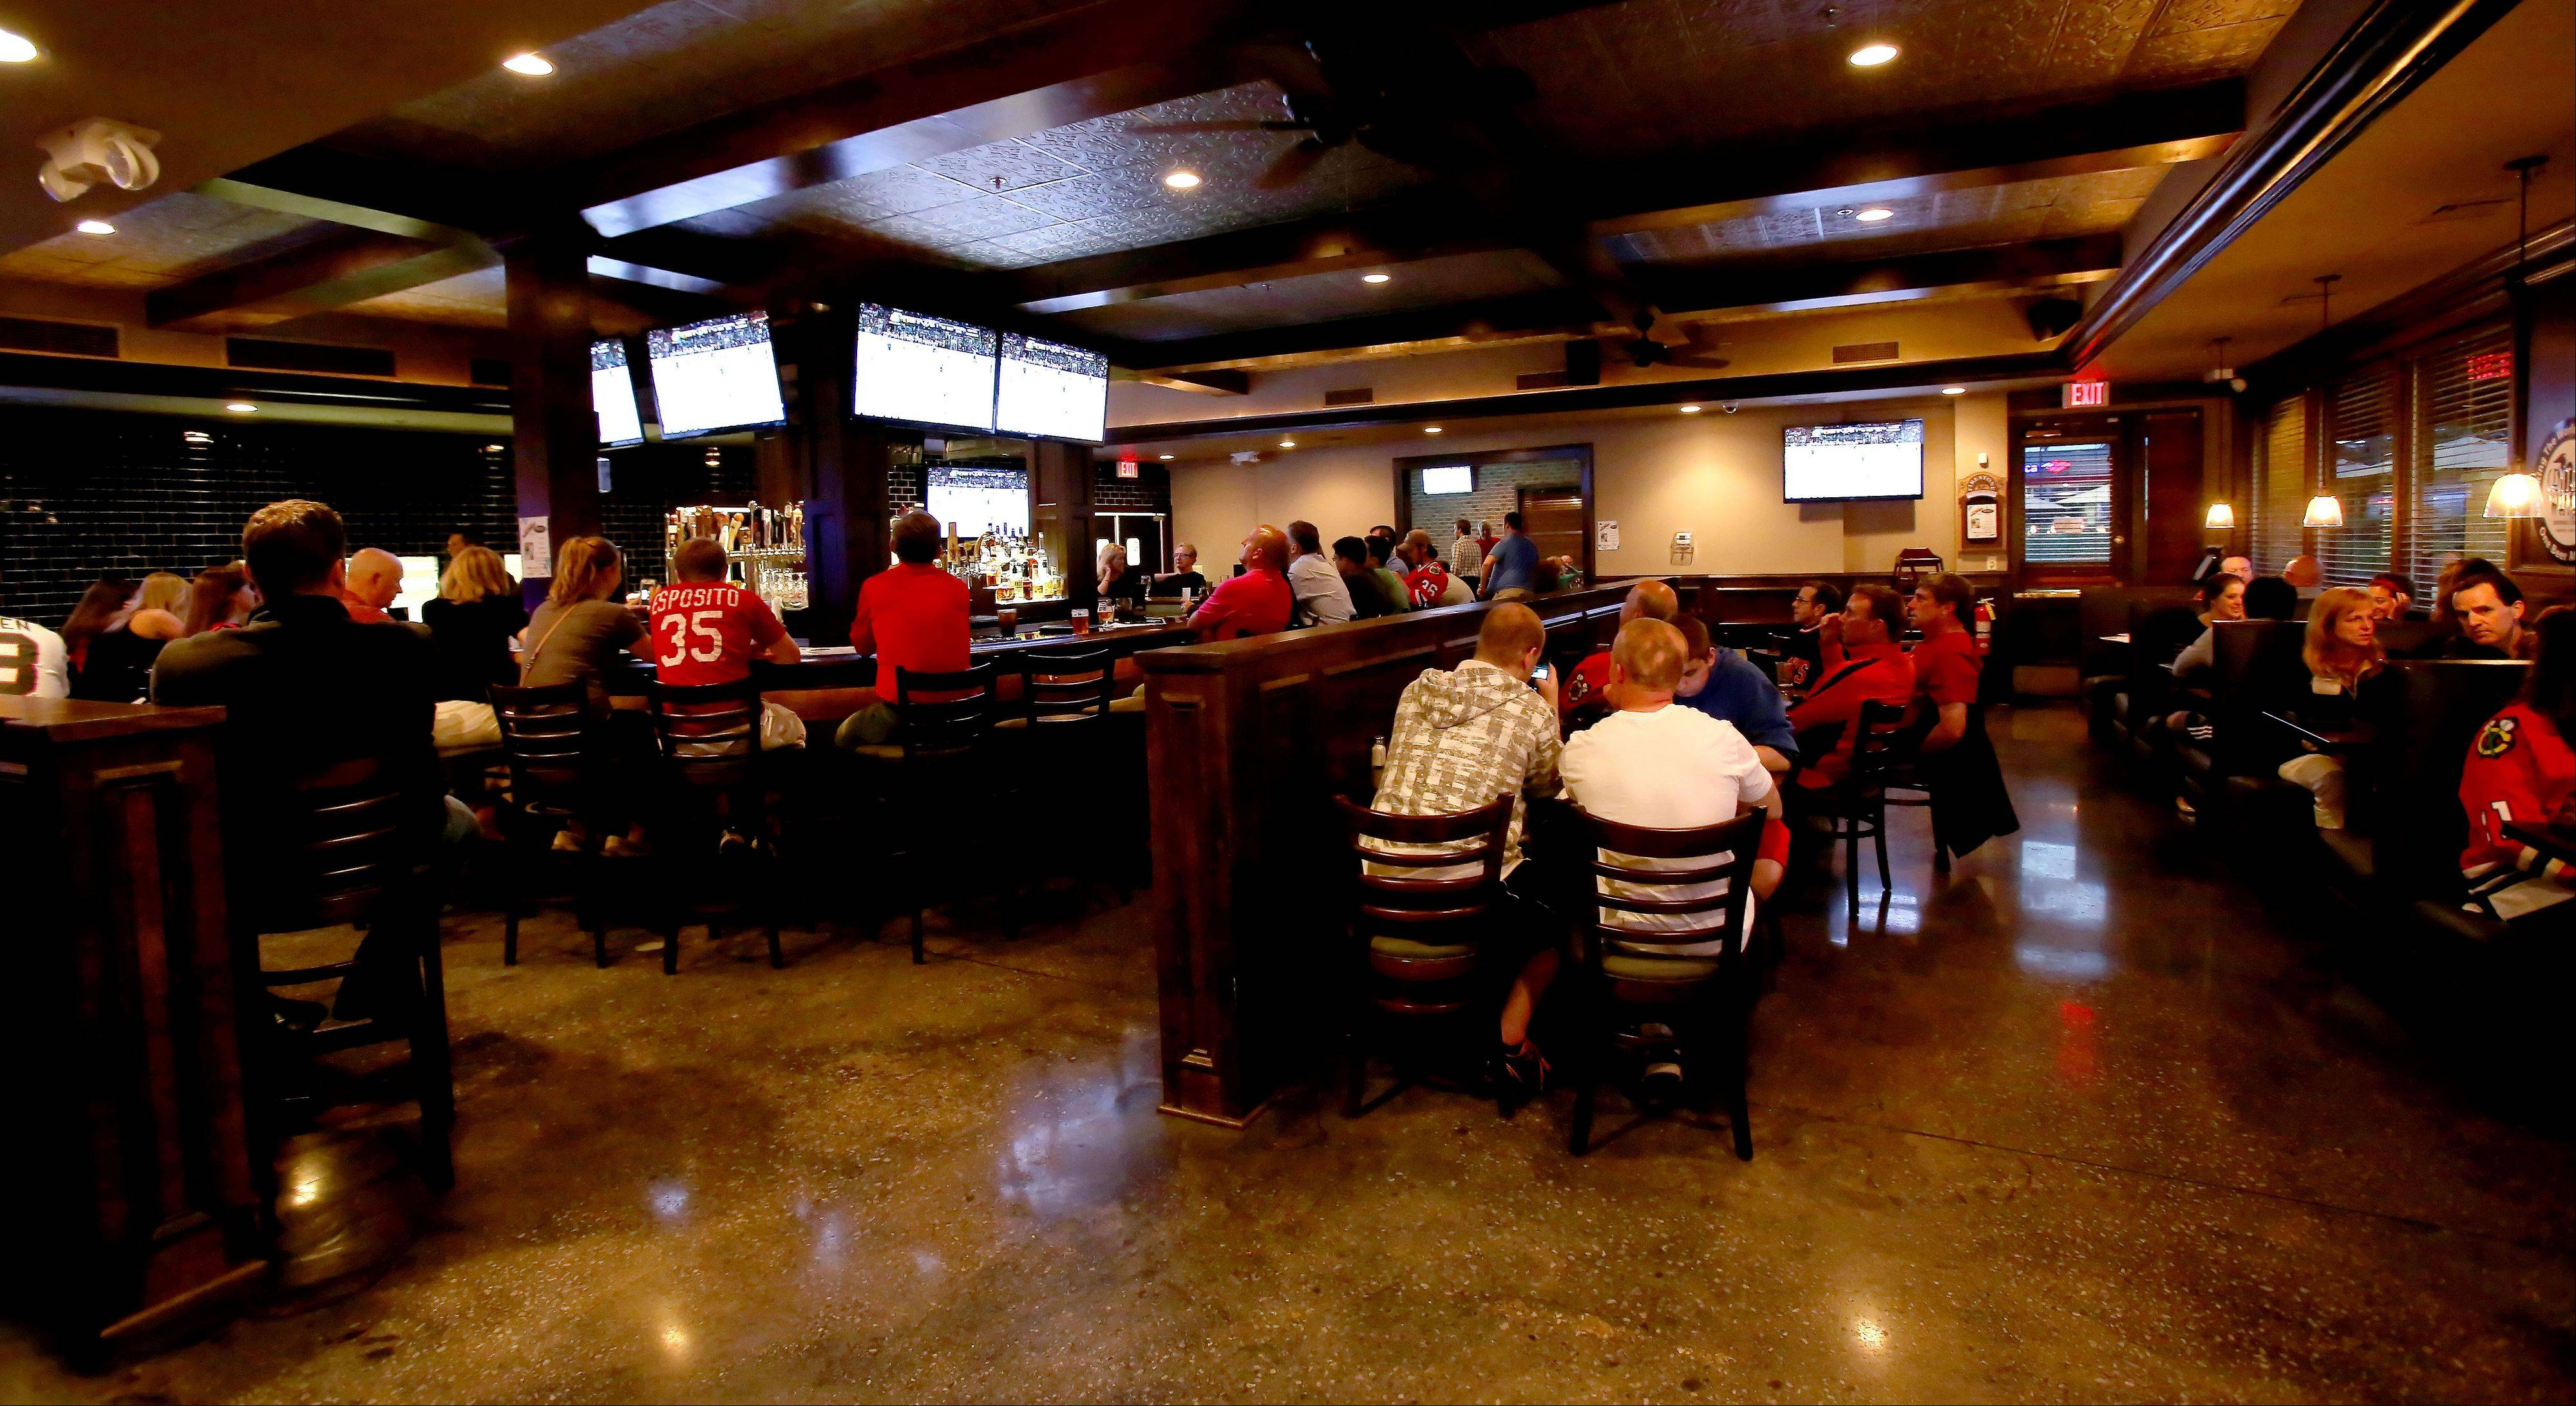 Sports fans should be happy with the many TVs in Warren's Ale House.